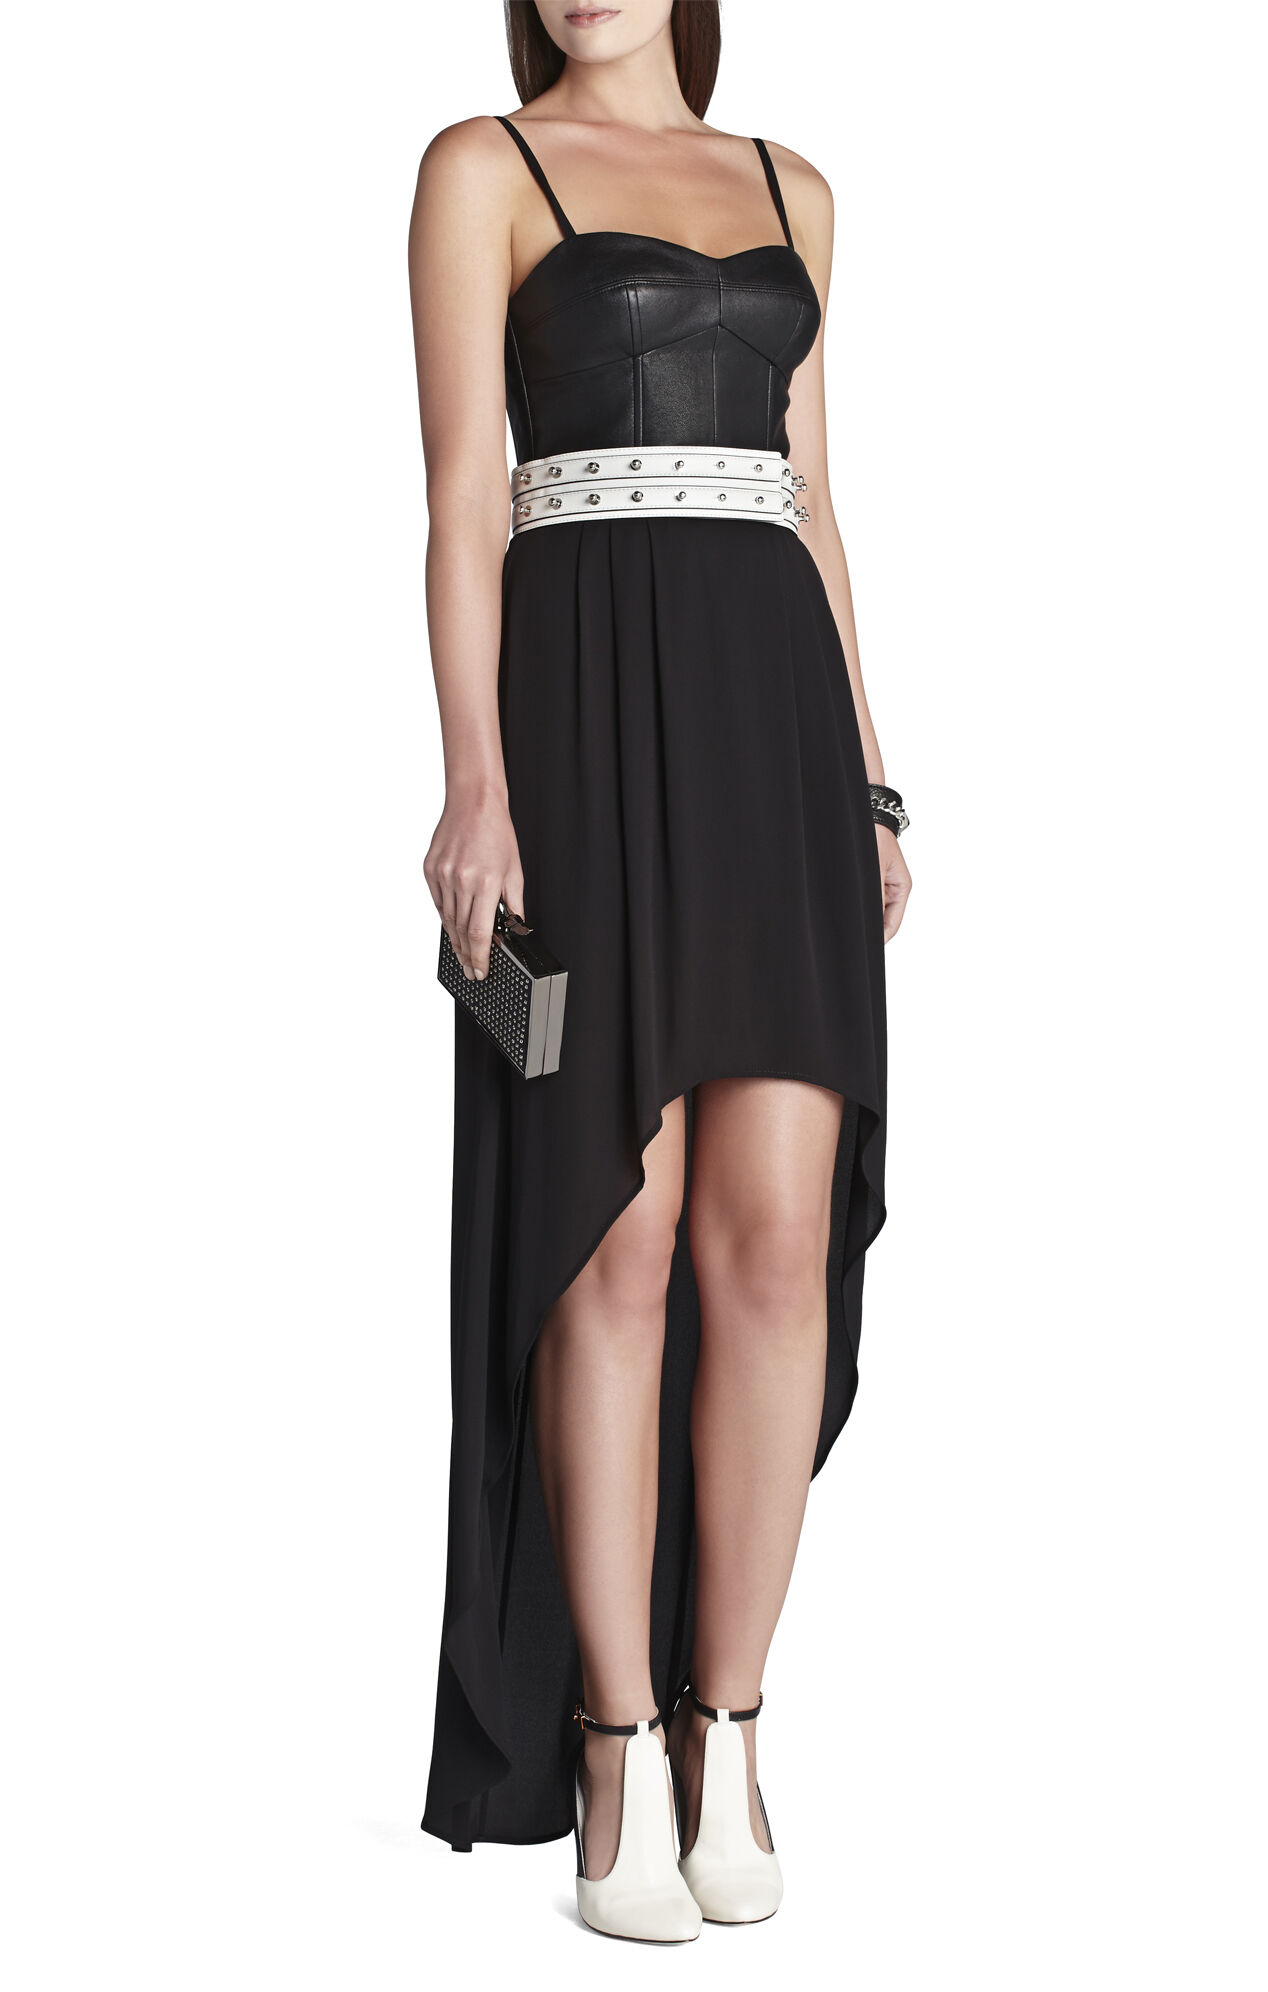 Collar-Studded Waist Belt